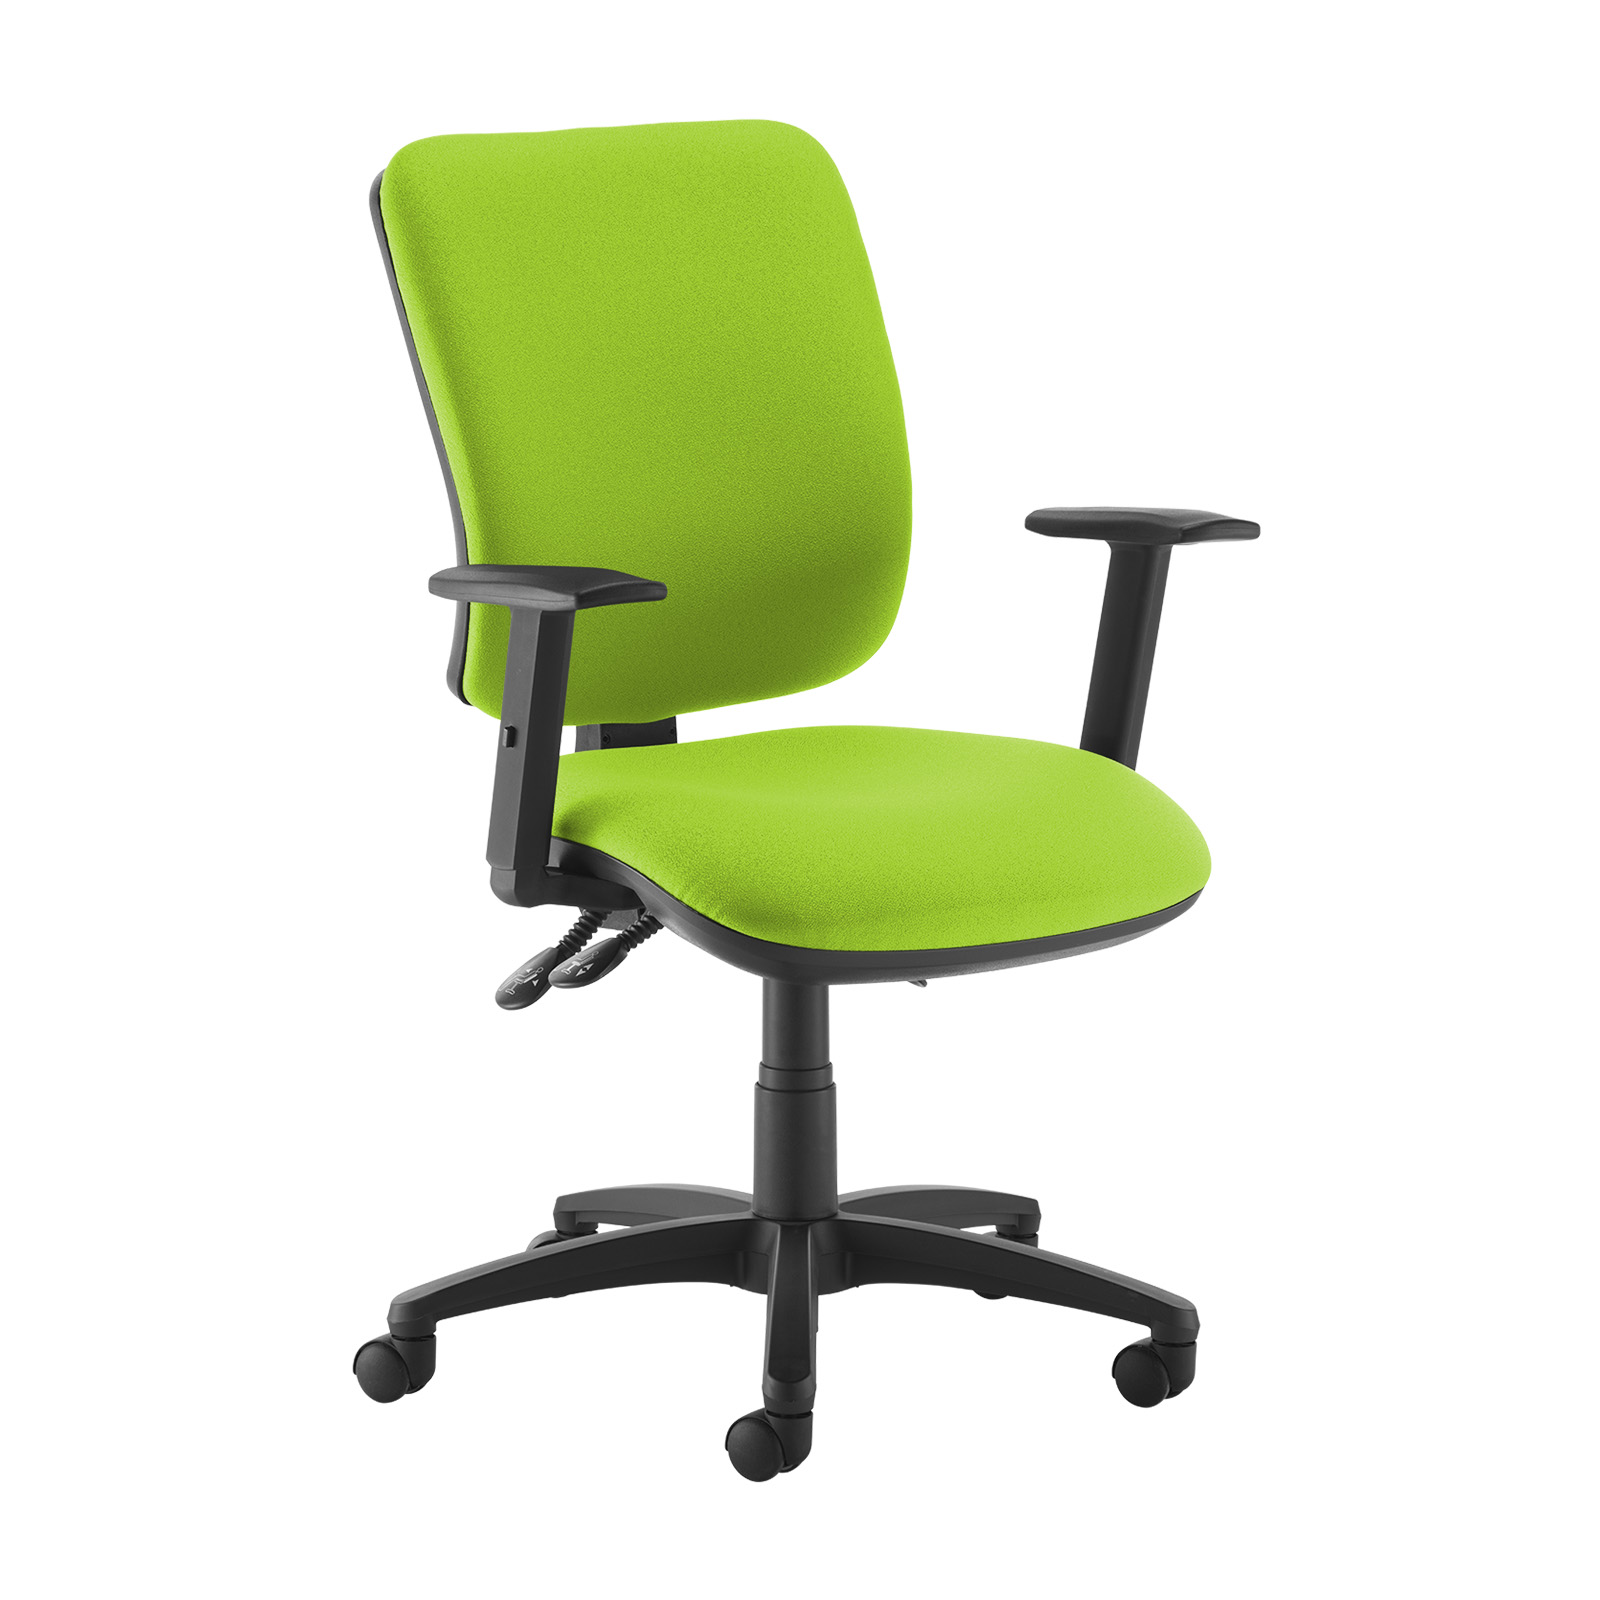 Desk Chairs Senza high back operator chair with adjustable arms - green